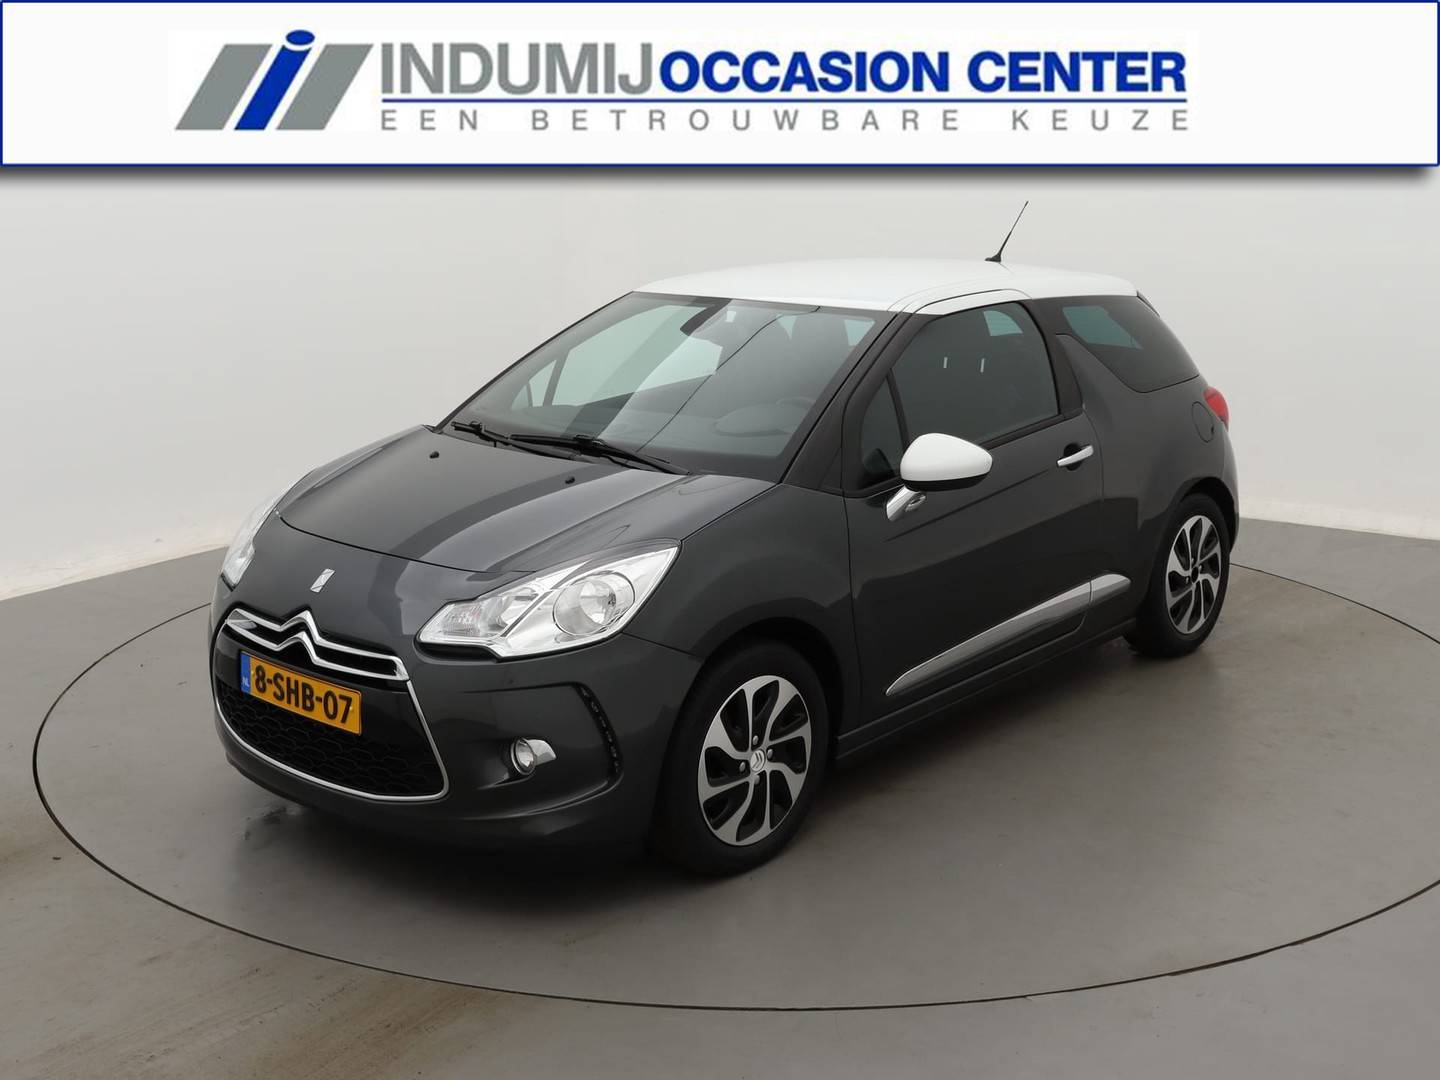 Citroën Ds3 1.6 e-hdi so chic + trekhaak / pack comfort / pack connect